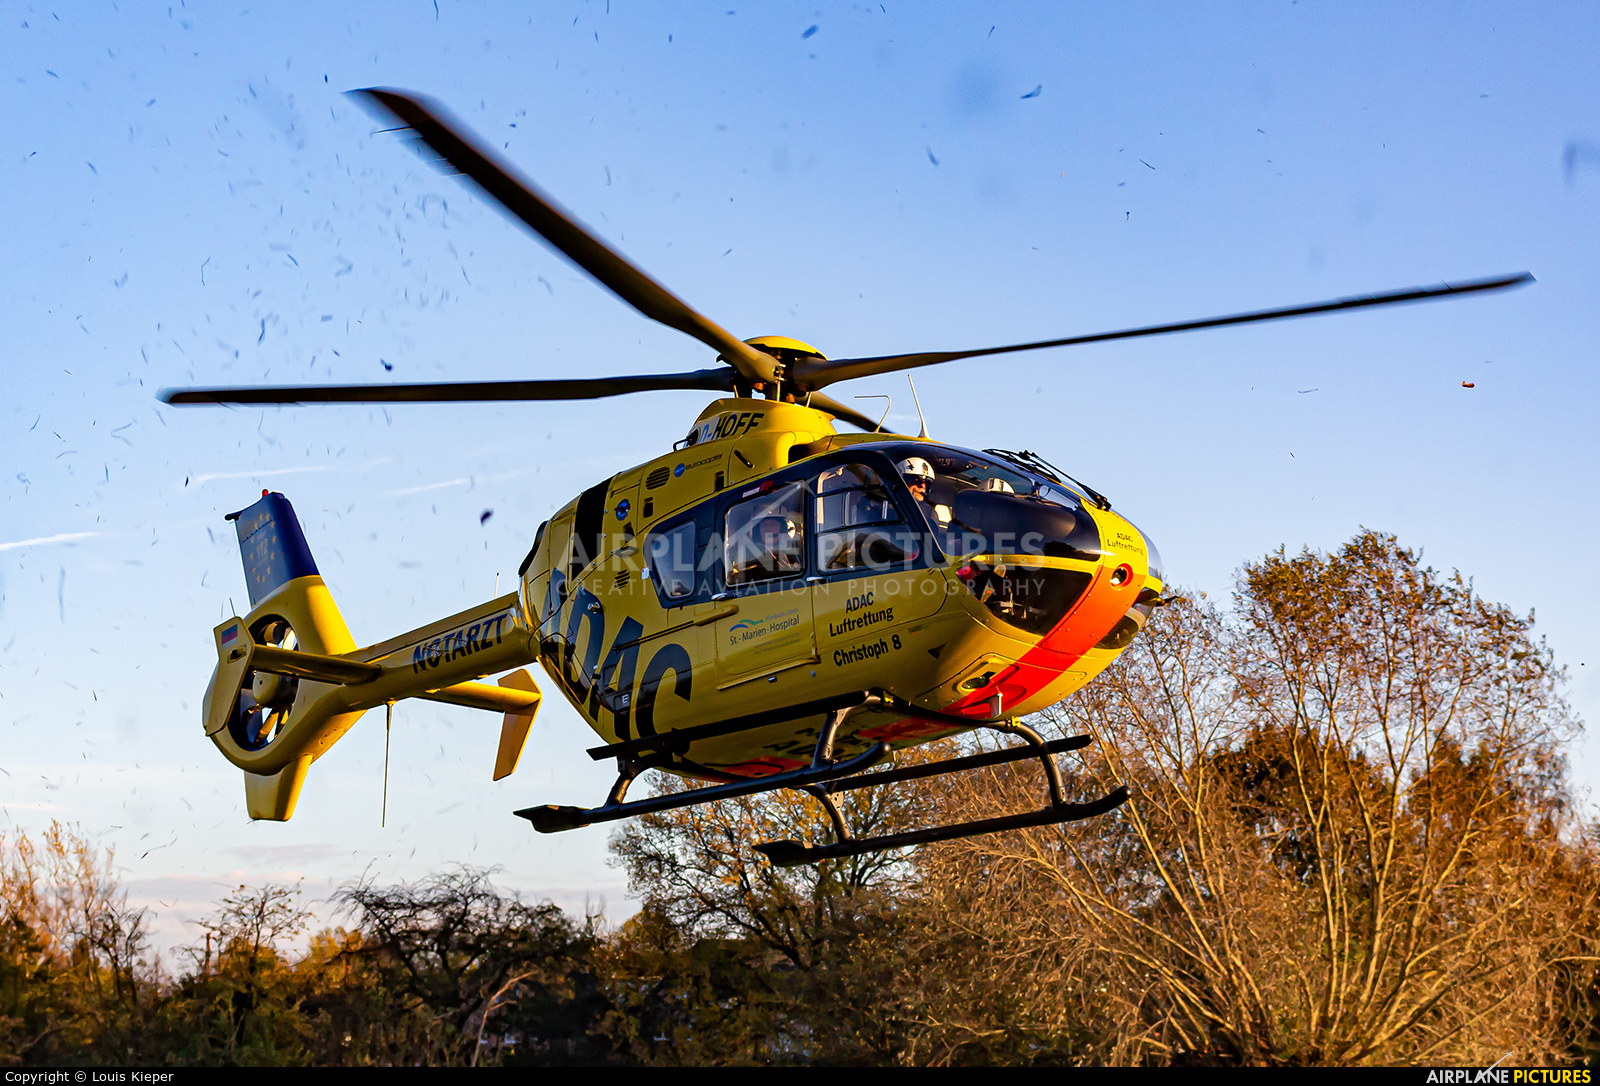 ADAC Luftrettung D-HOFF aircraft at Off Airport - Germany